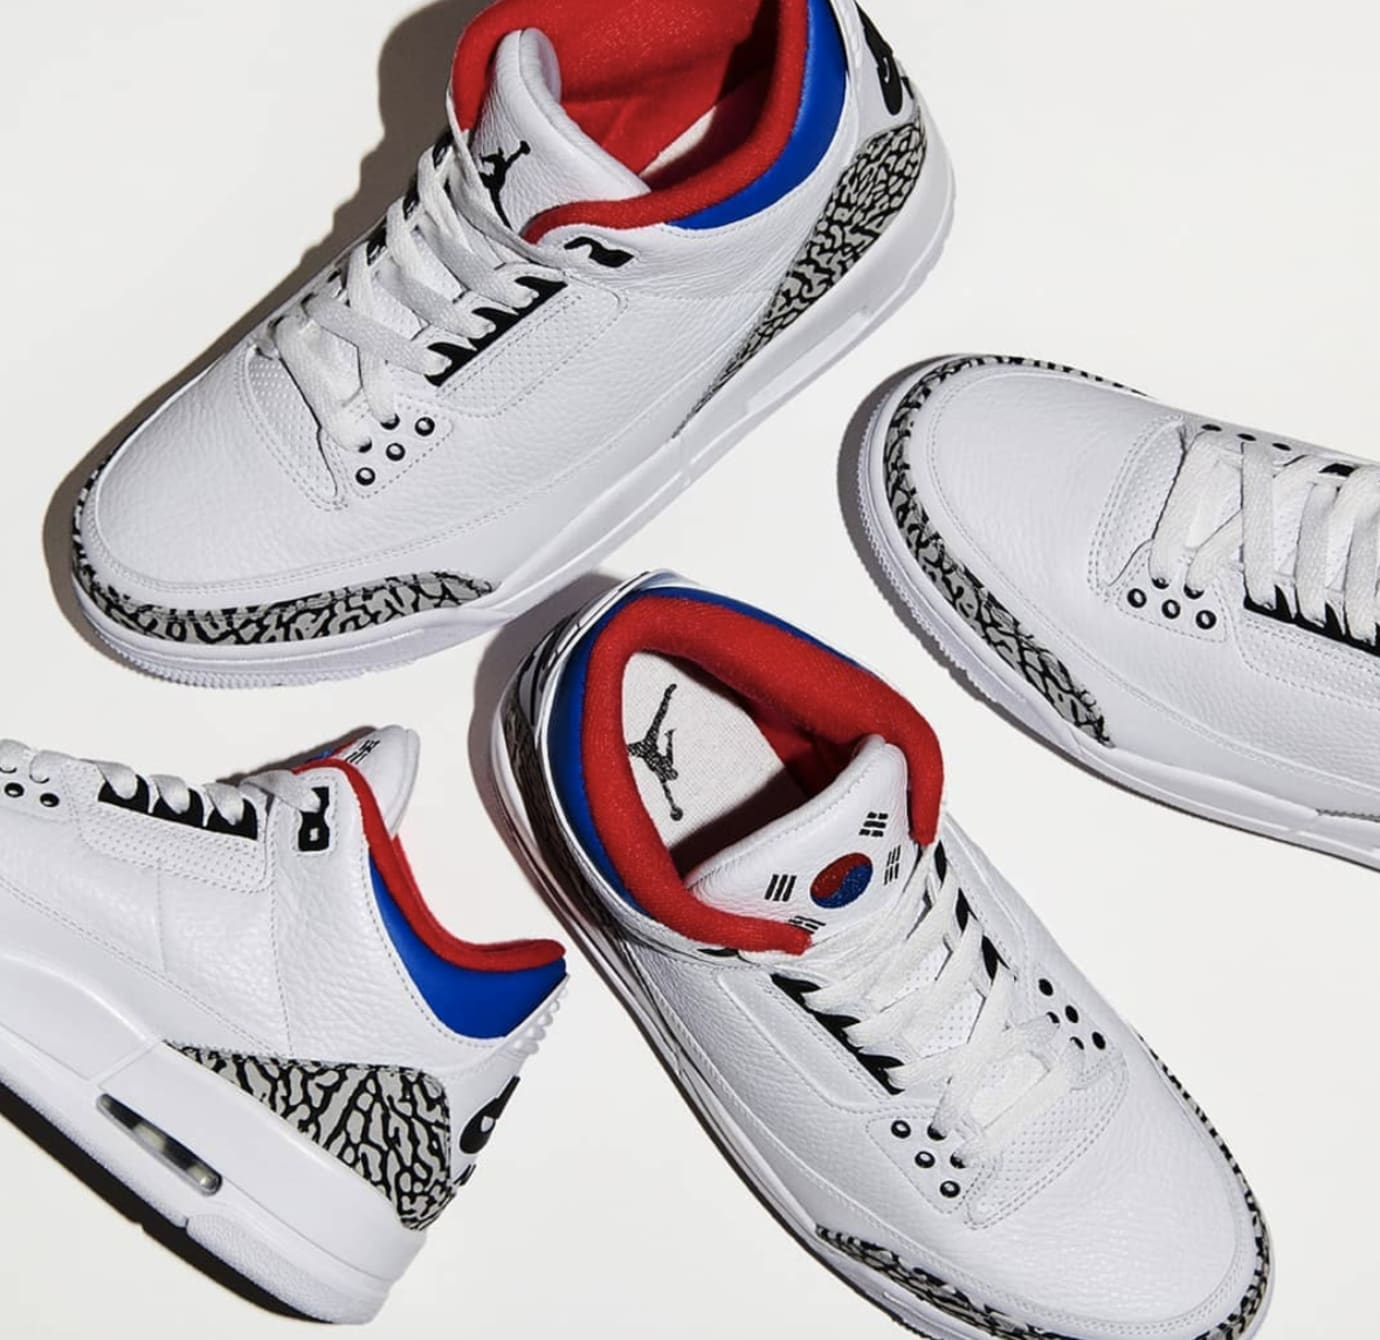 Air Jordan 3 'Korea' 1